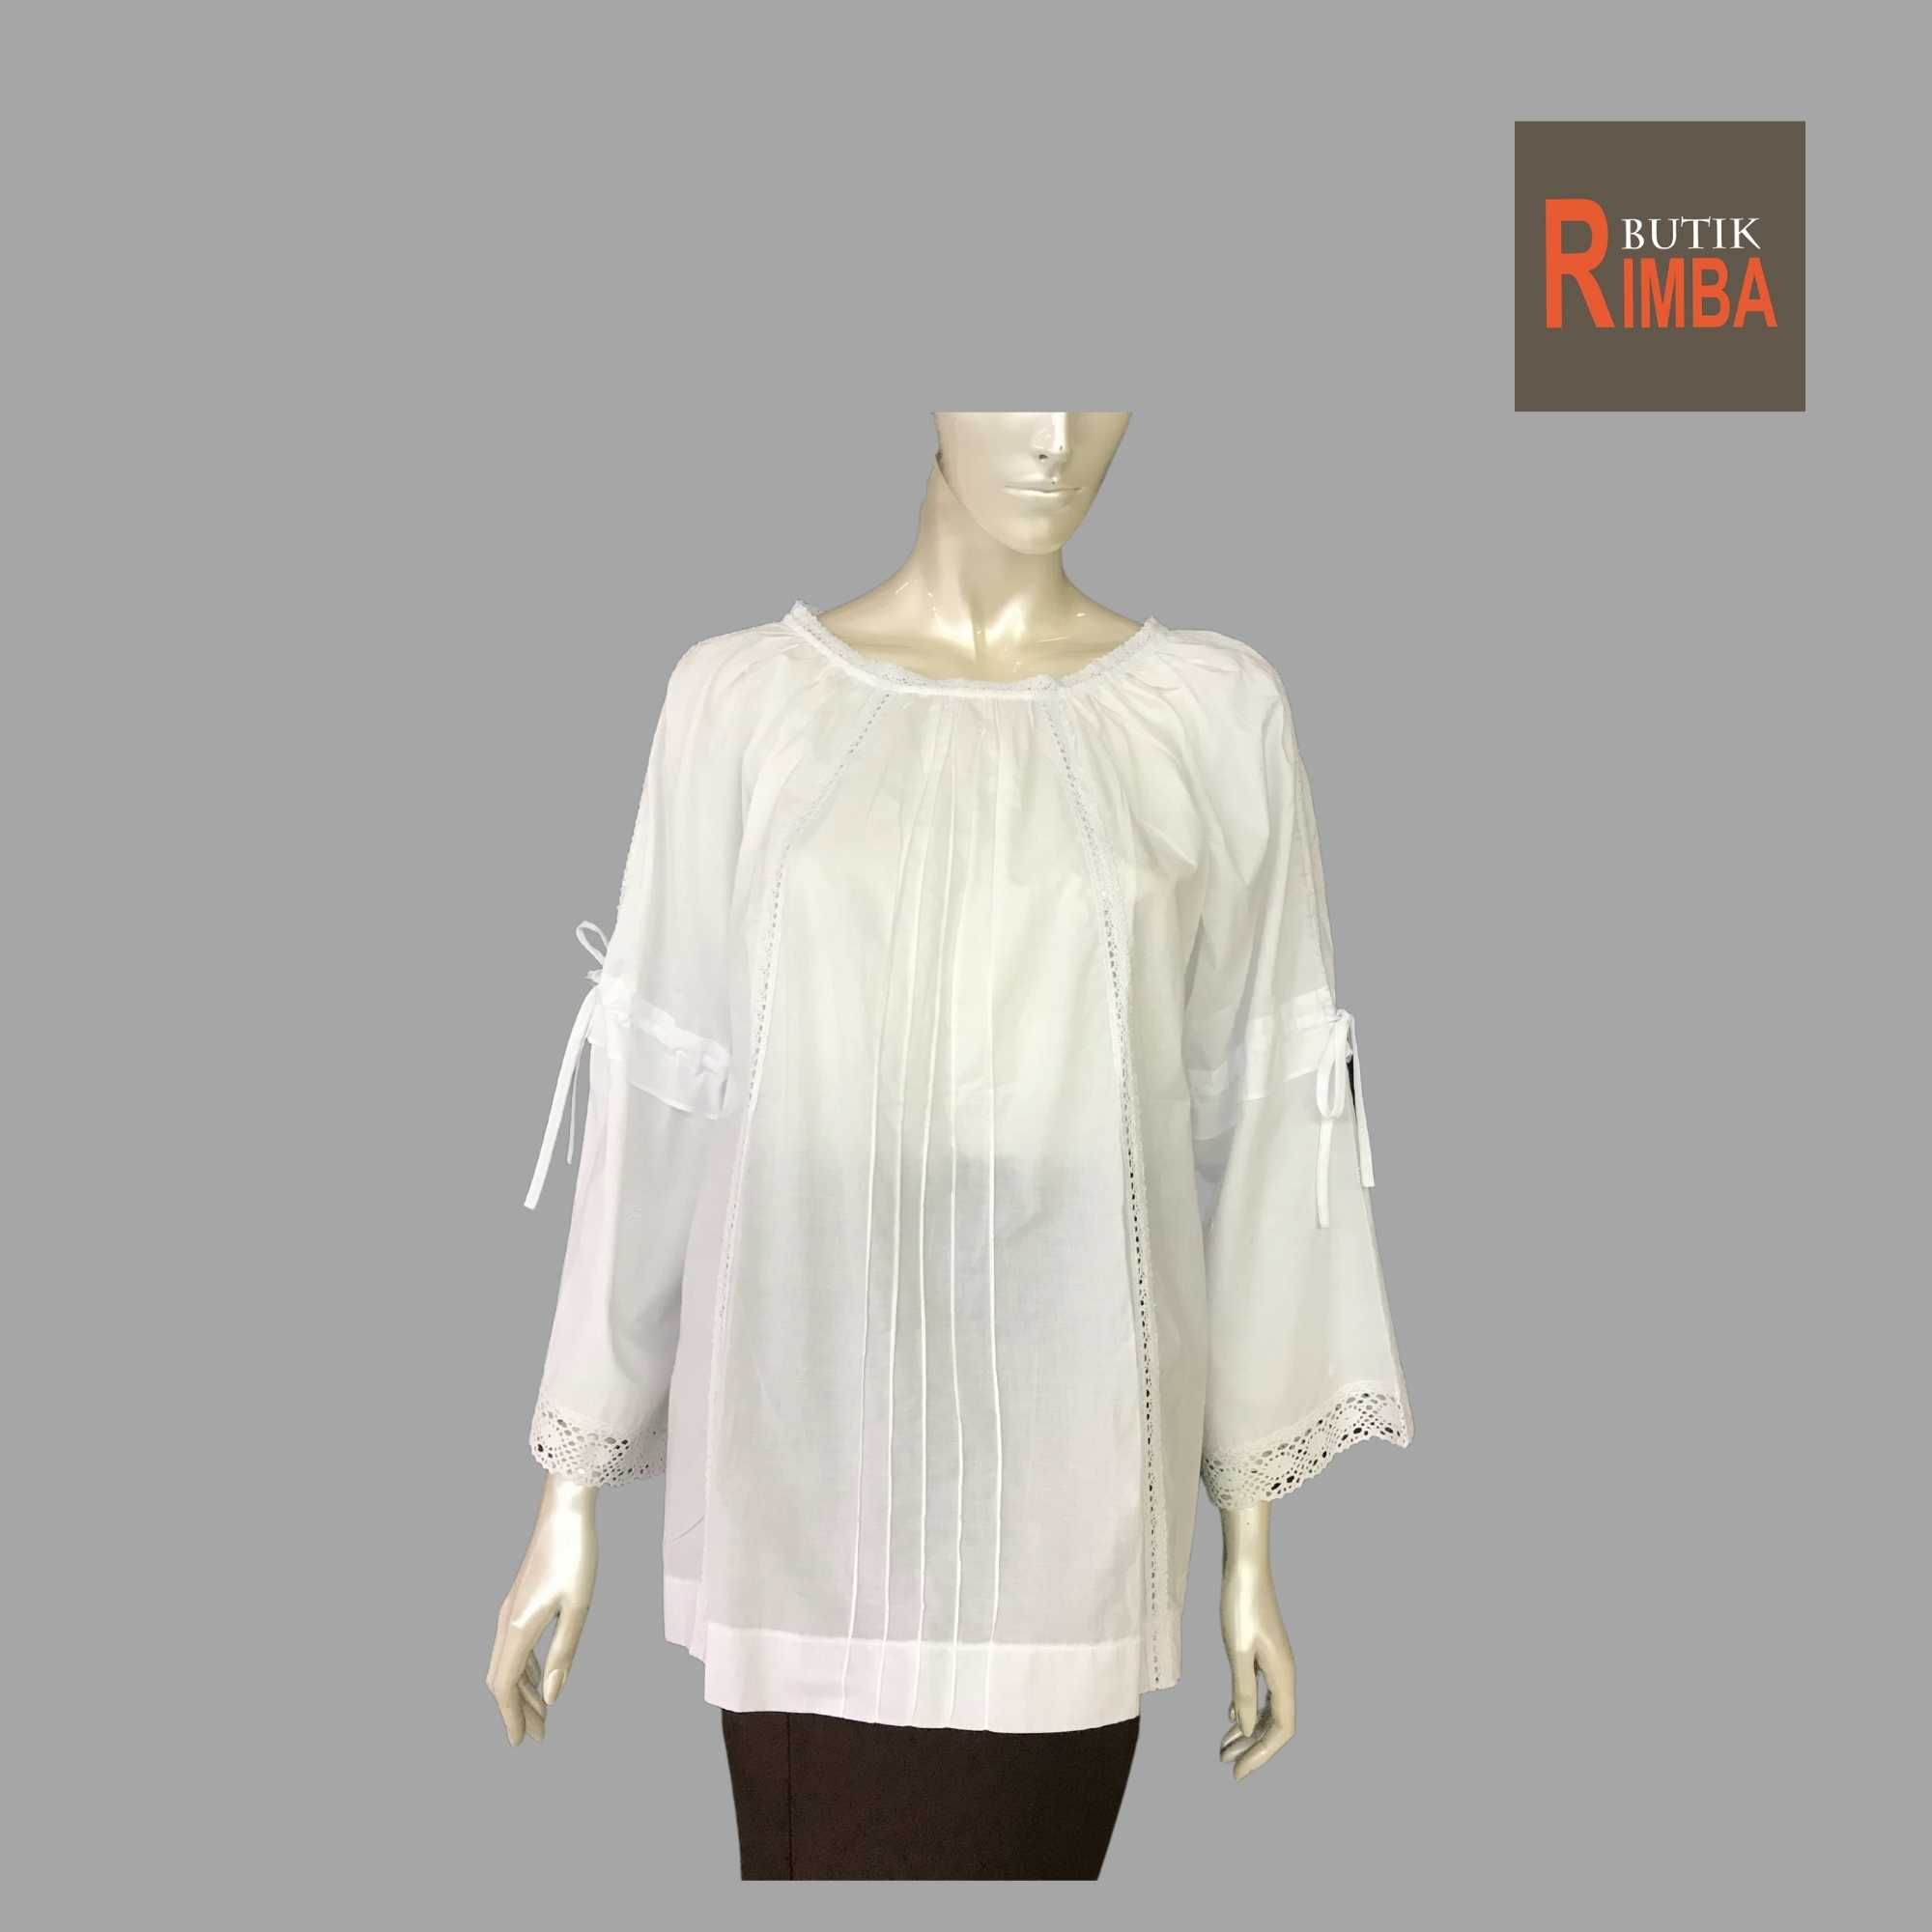 WOMEN CASUAL AND COMFORTABLE WHITE BLOUSE COTTON FREE SIZE PATTERN 02